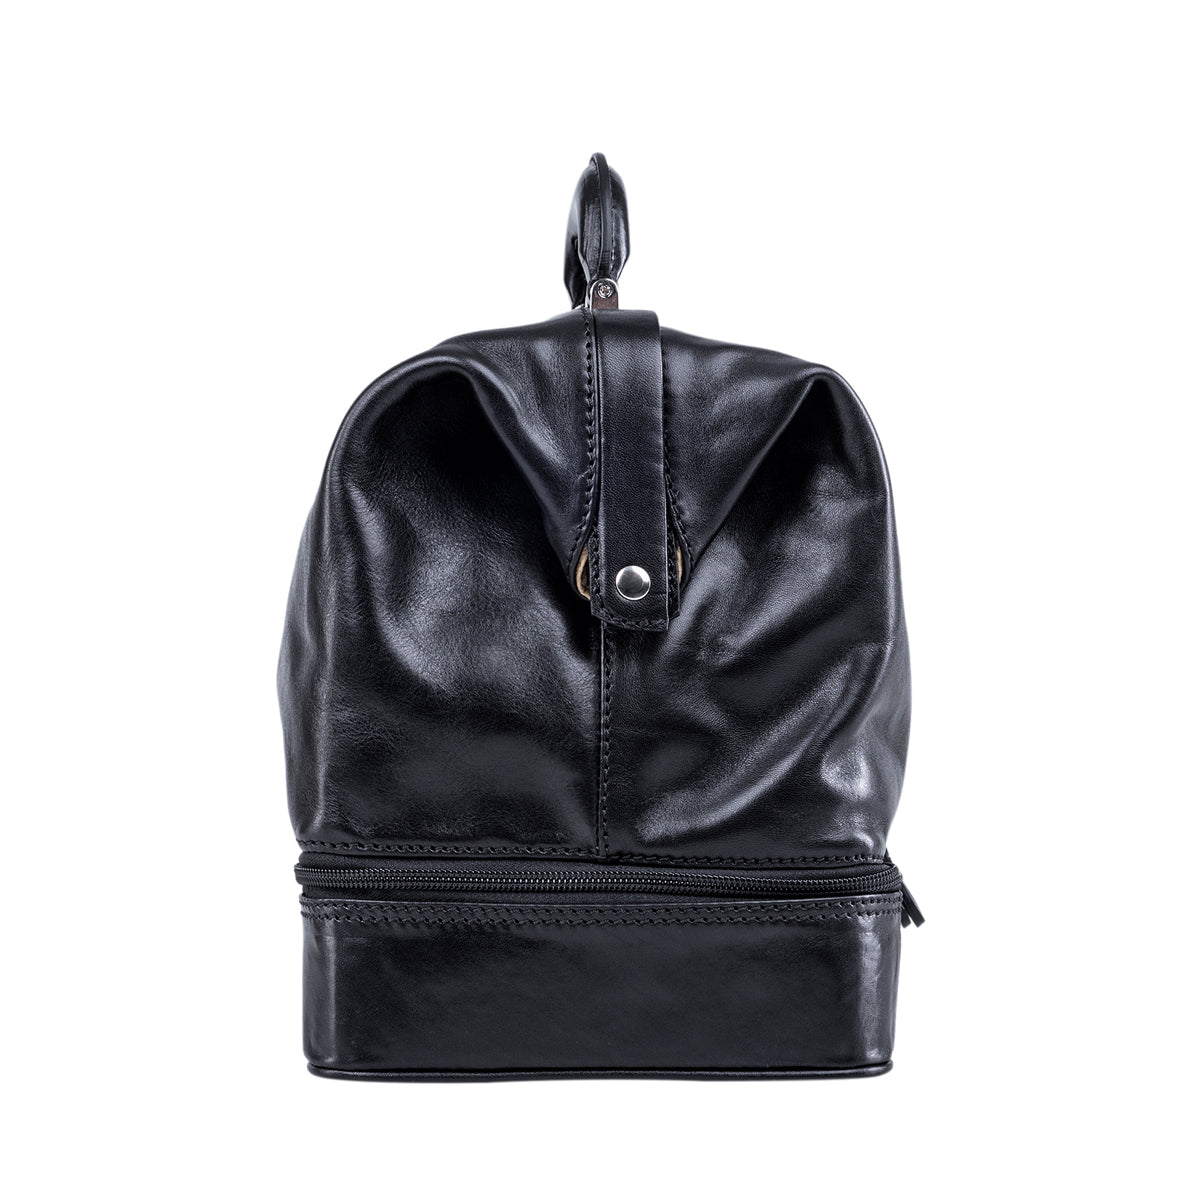 Image 3 of the Large ''Donnini' Black Veg-Tanned Leather Doctor's Bag